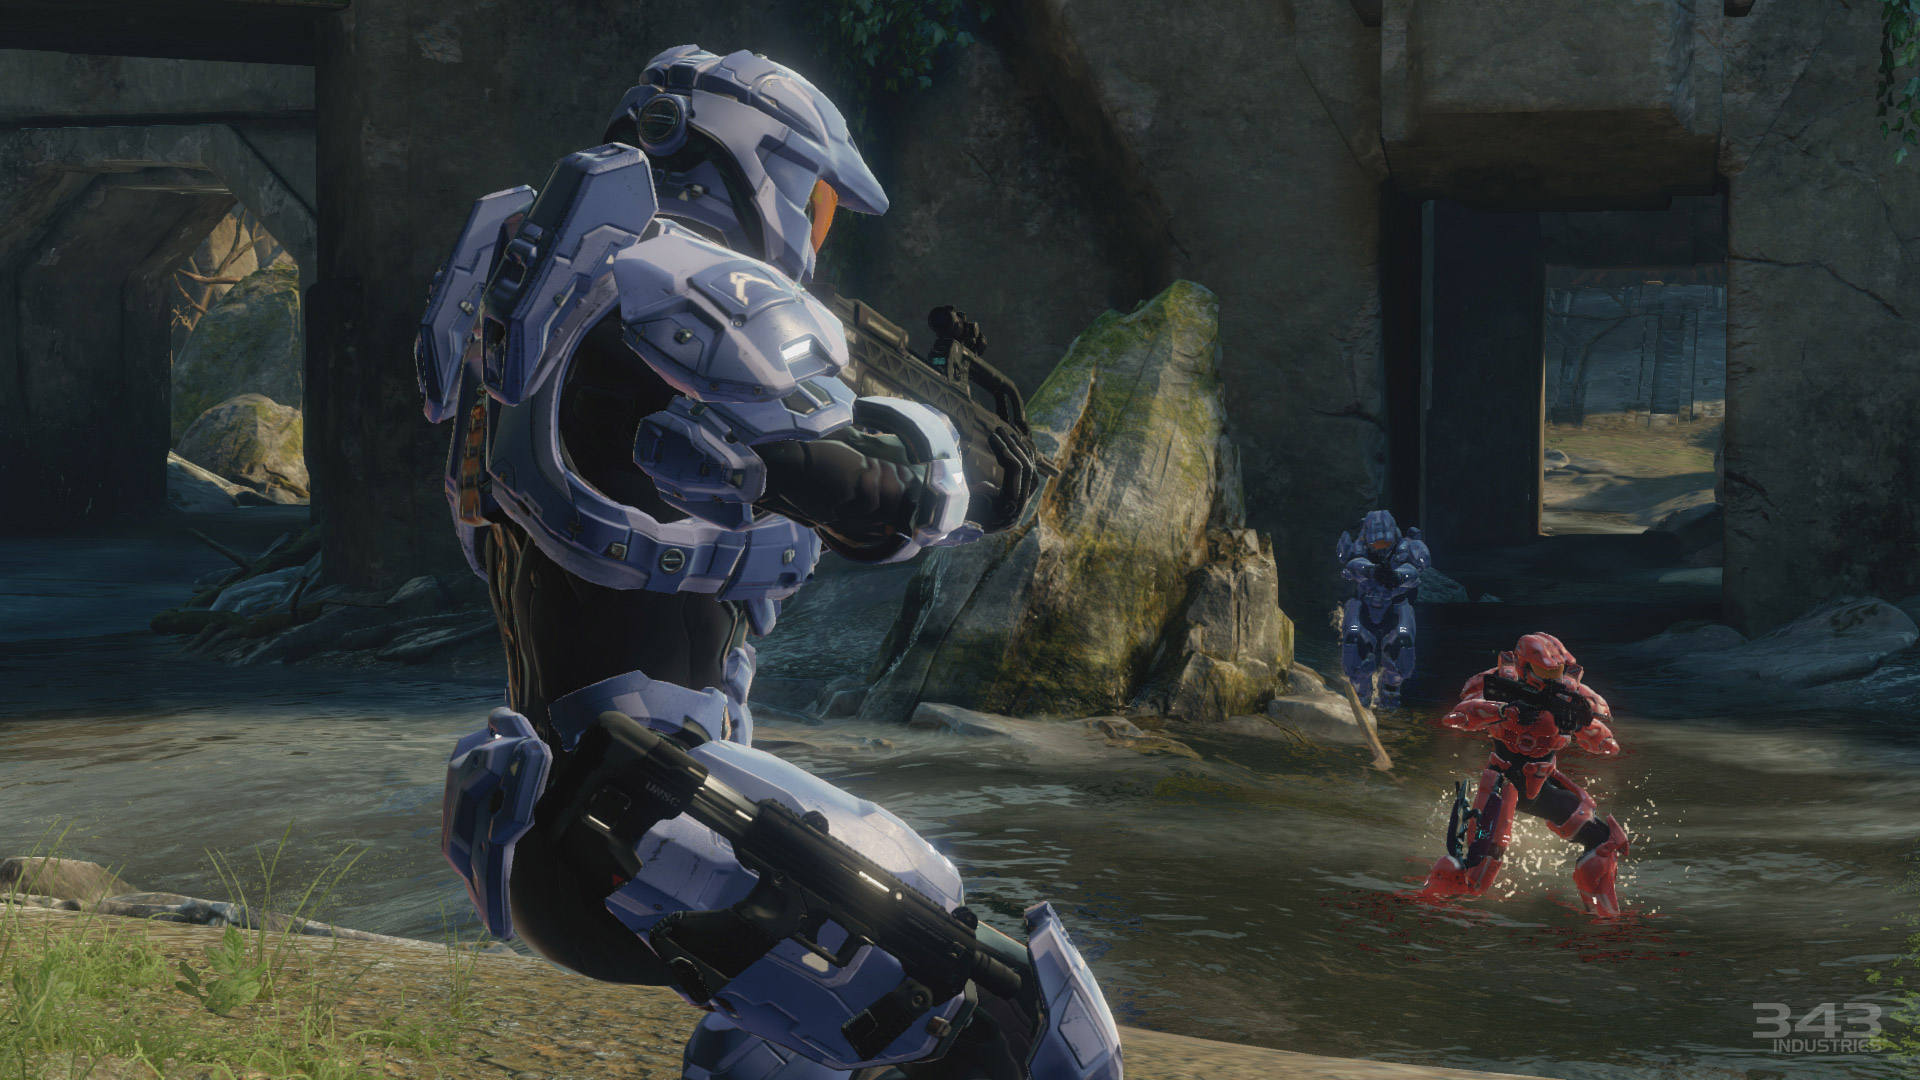 Halo: The Master Chief Collection might bring 'infected' multiplayer back soon